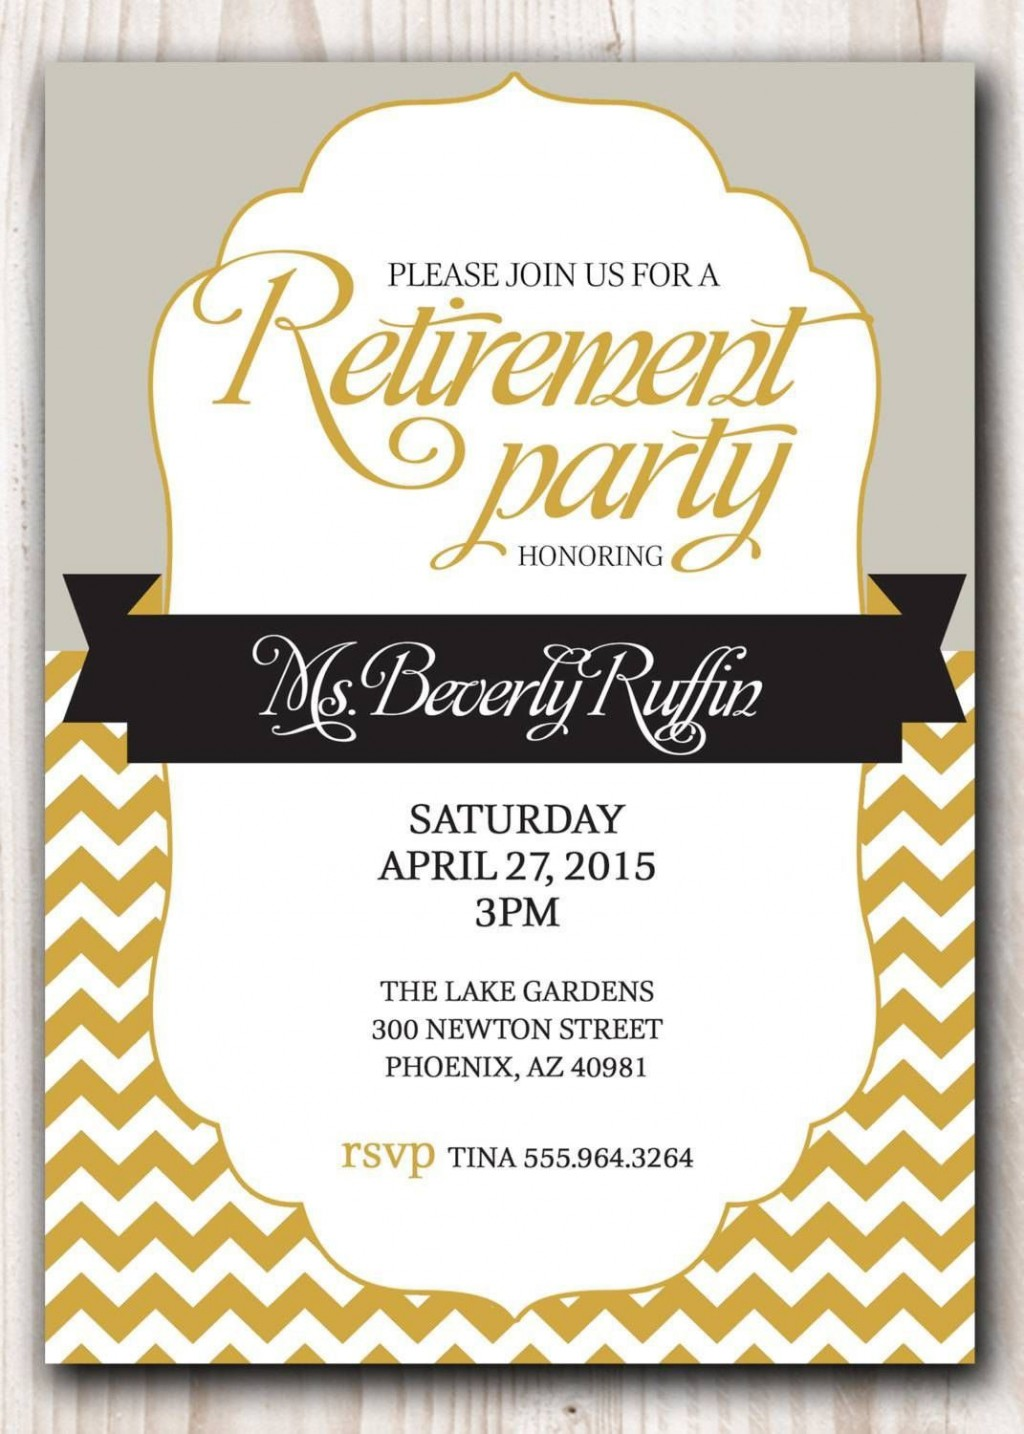 007 Impressive Retirement Party Invitation Template Free Word Inspiration  MLarge